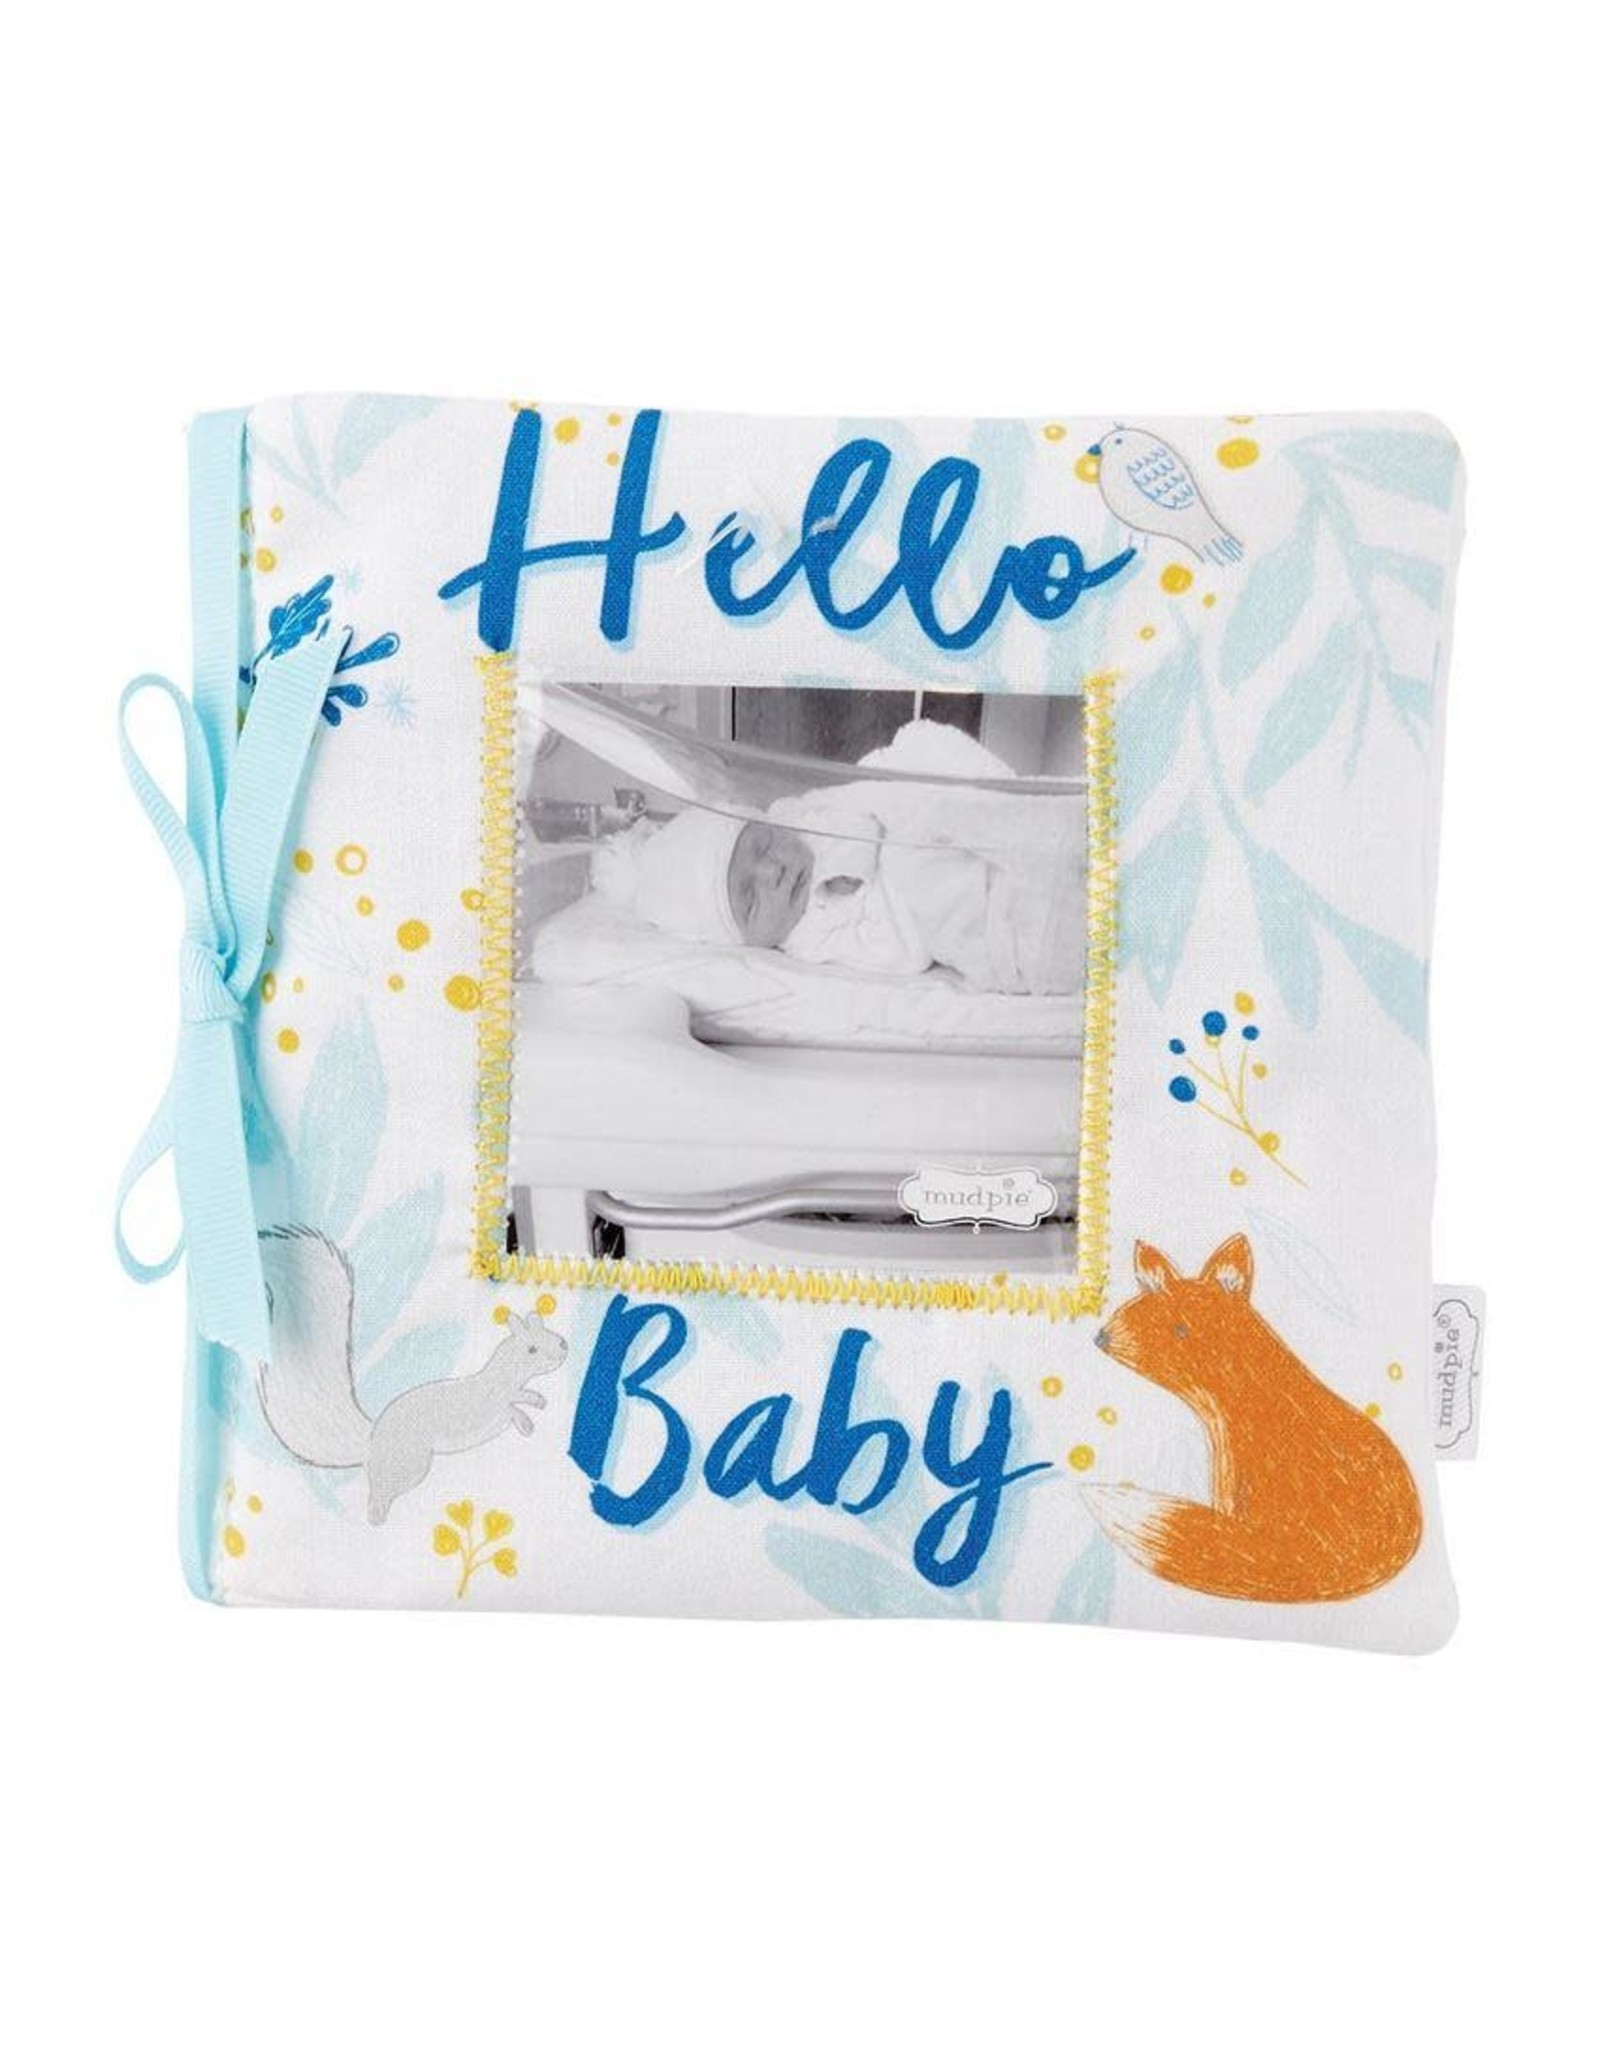 Hello Baby Photo Book